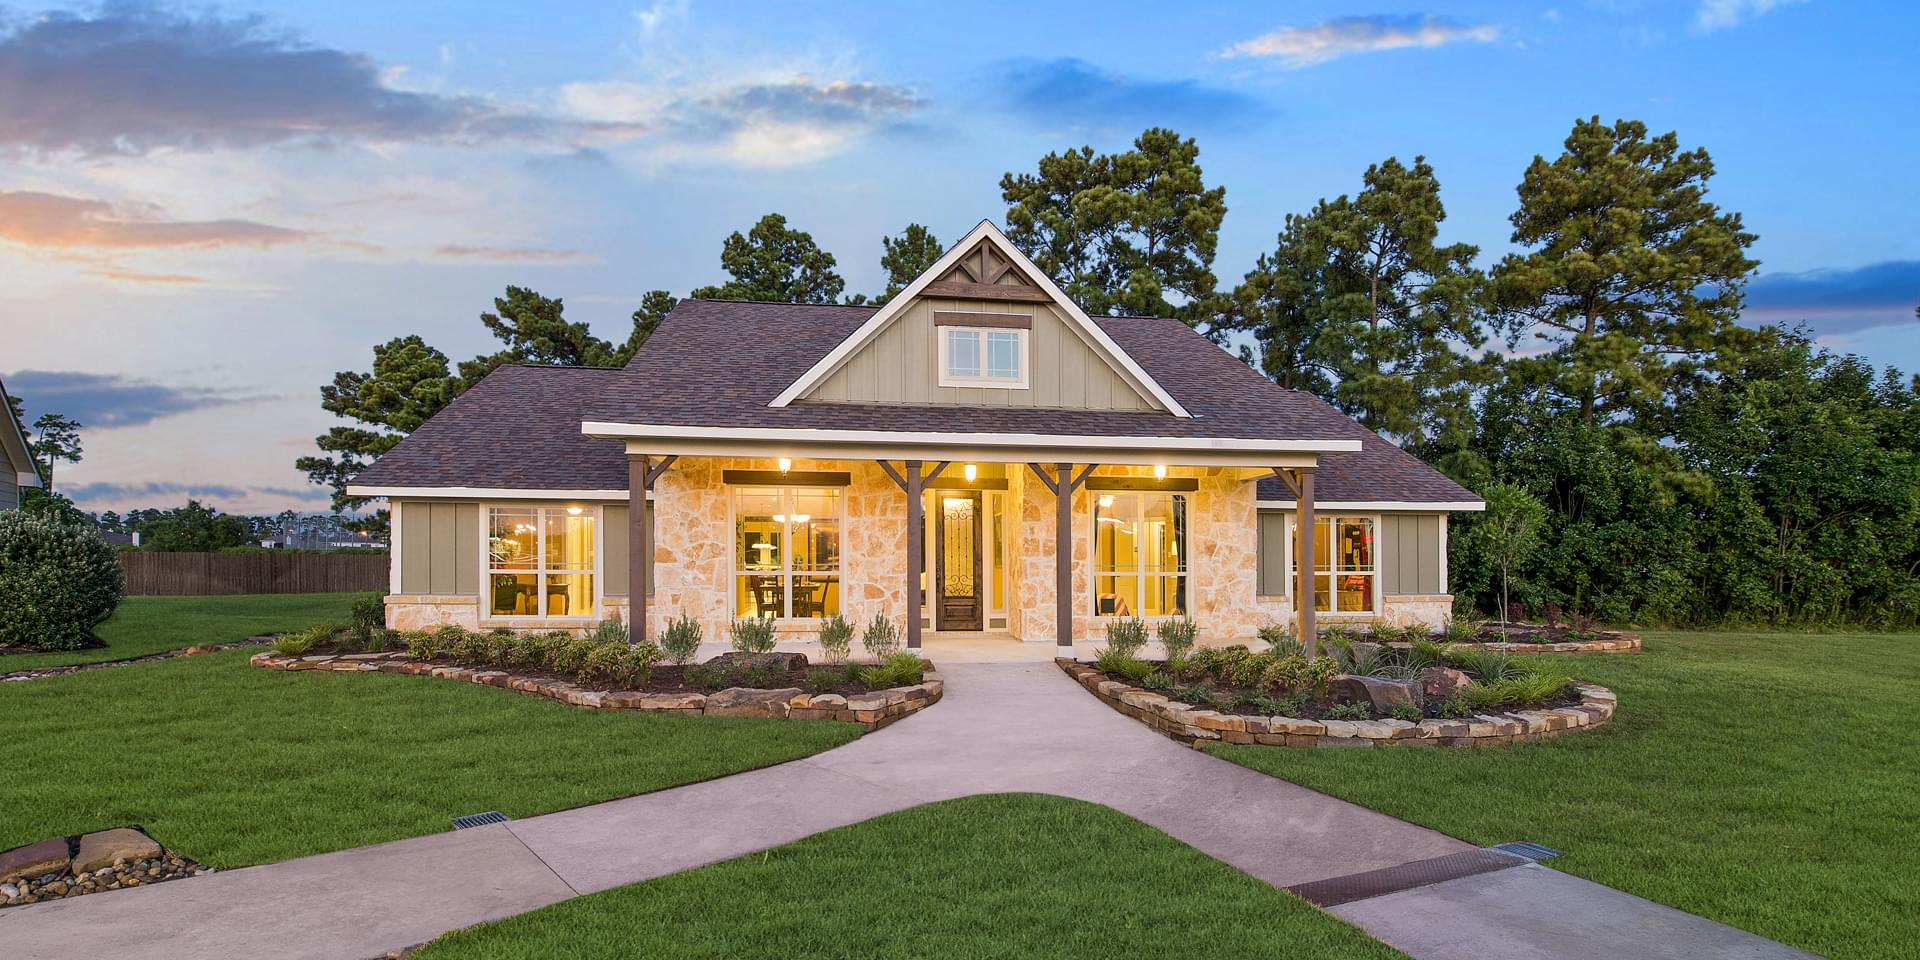 The San Jacinto Custom Home Plan from Tilson Homes